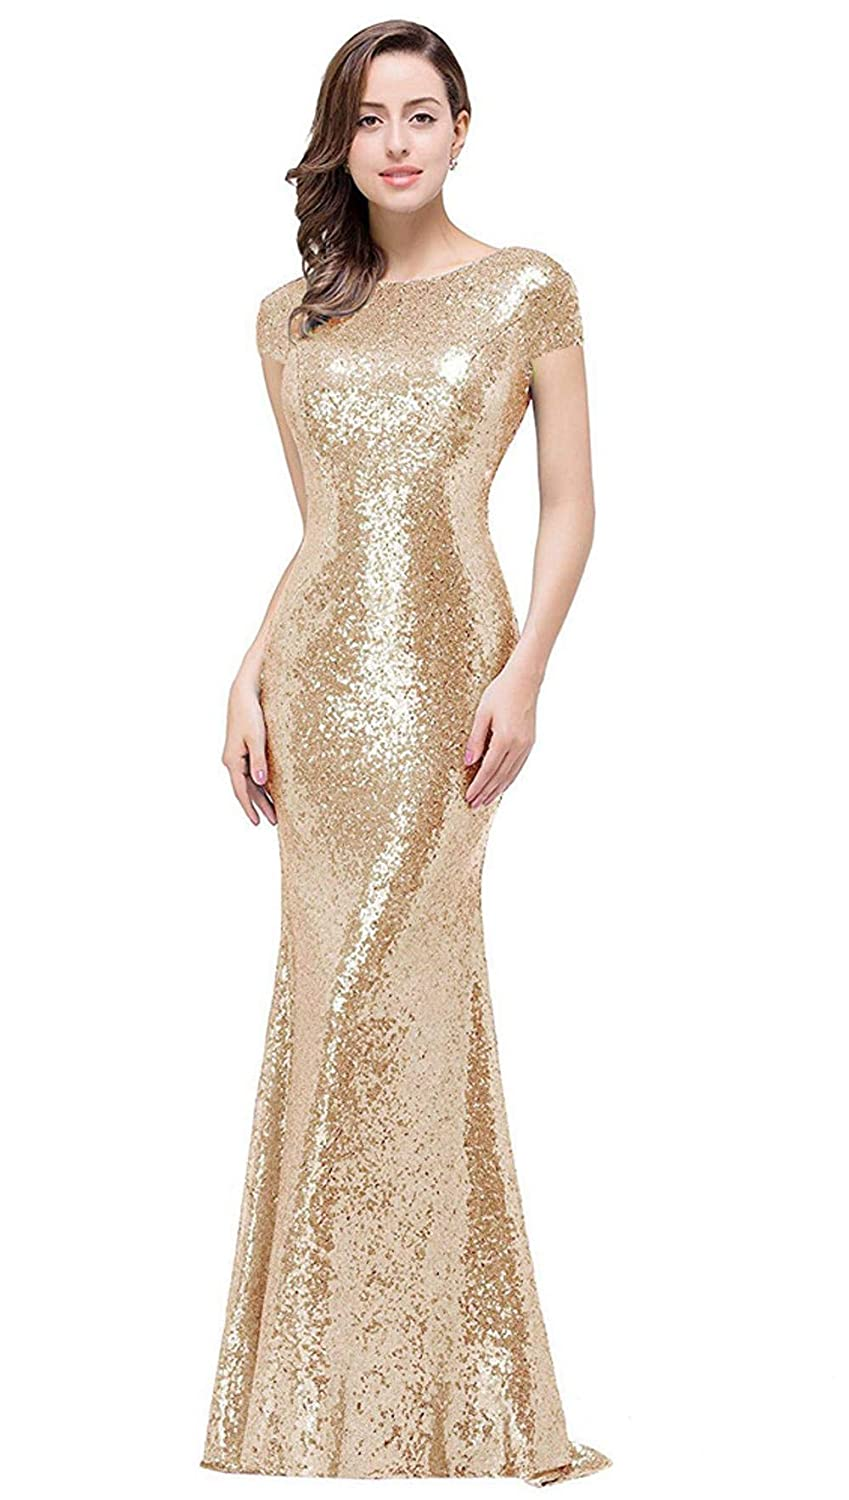 b29136153d8 MisShow Women Sequins Prom Bridesmaid Dress Glitter Rose Gold Long Evening  Gowns Formal at Amazon Women s Clothing store